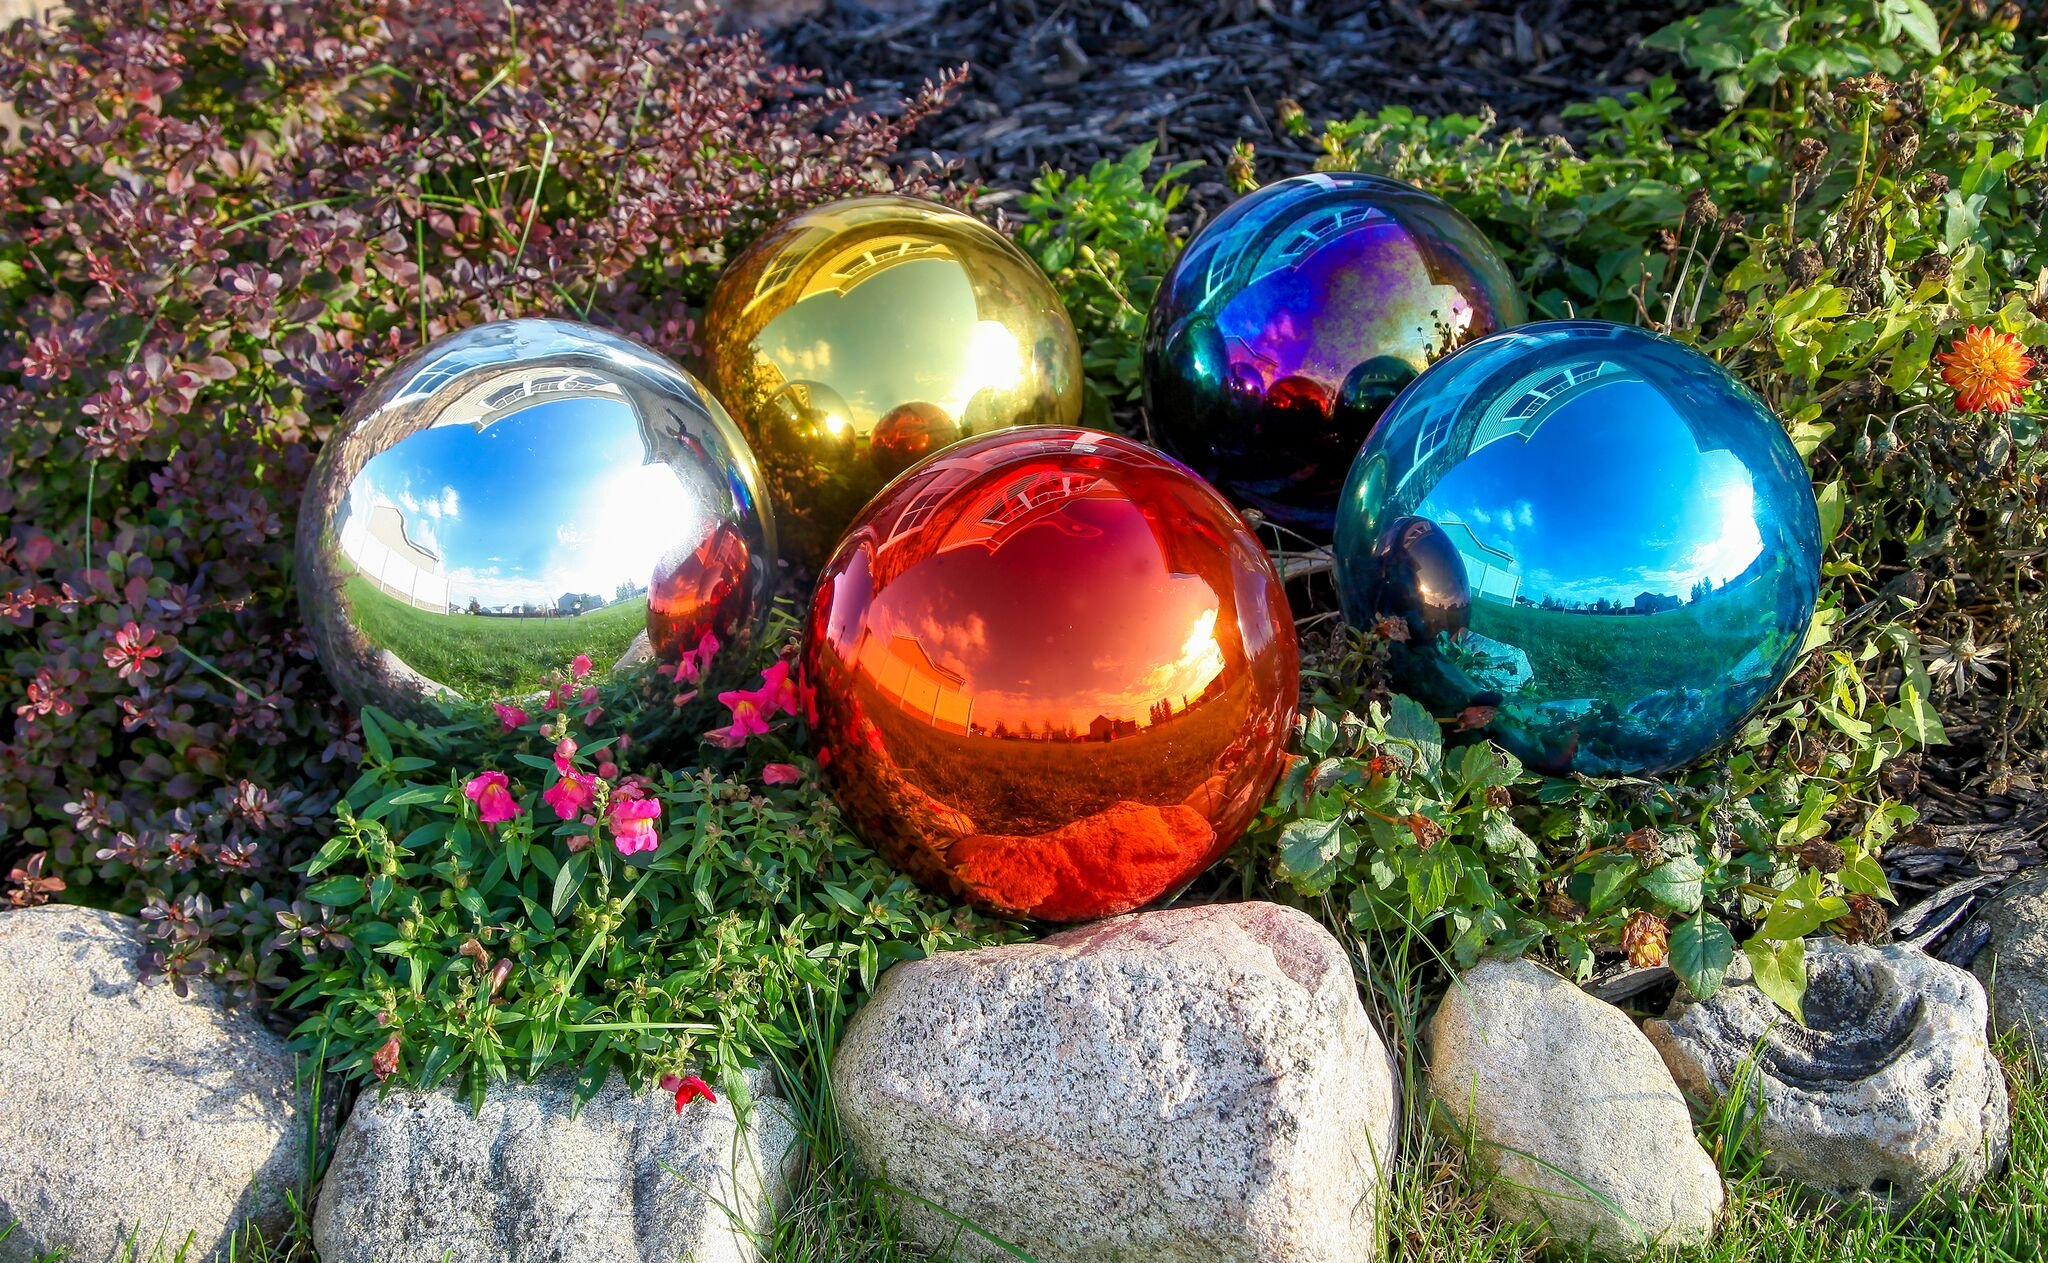 Lily's Home Glass Gazing Mirror Ball, Colorful and Shiny Addition to Any Garden or Home, Ideal As a Housewarming Gift, Sparkling Silver (10 Inches Diameter) by Lilyshome (Image #4)